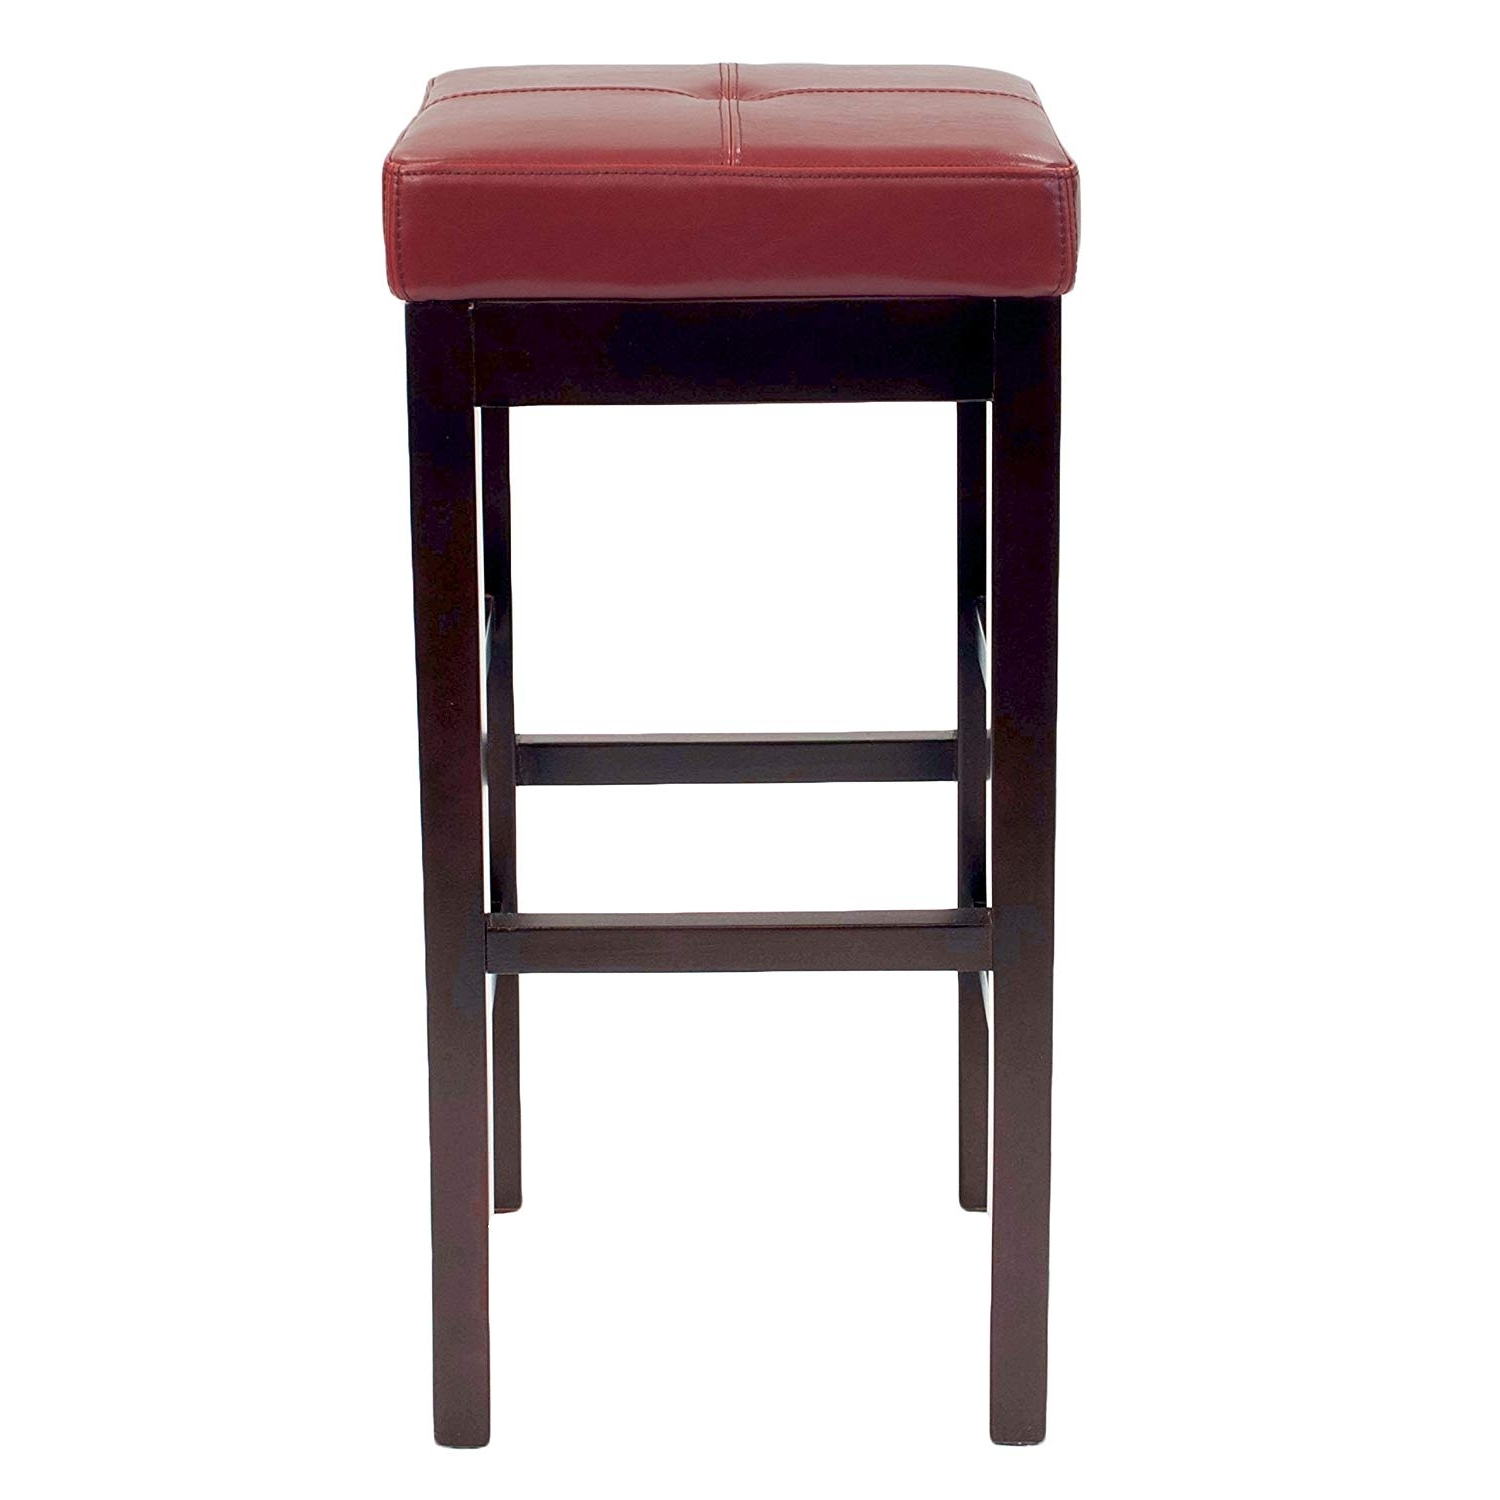 Amazon: New Pacific Direct Valencia Backless Leather Counter Within Most Recently Released Valencia 5 Piece Counter Sets With Counterstool (View 21 of 25)